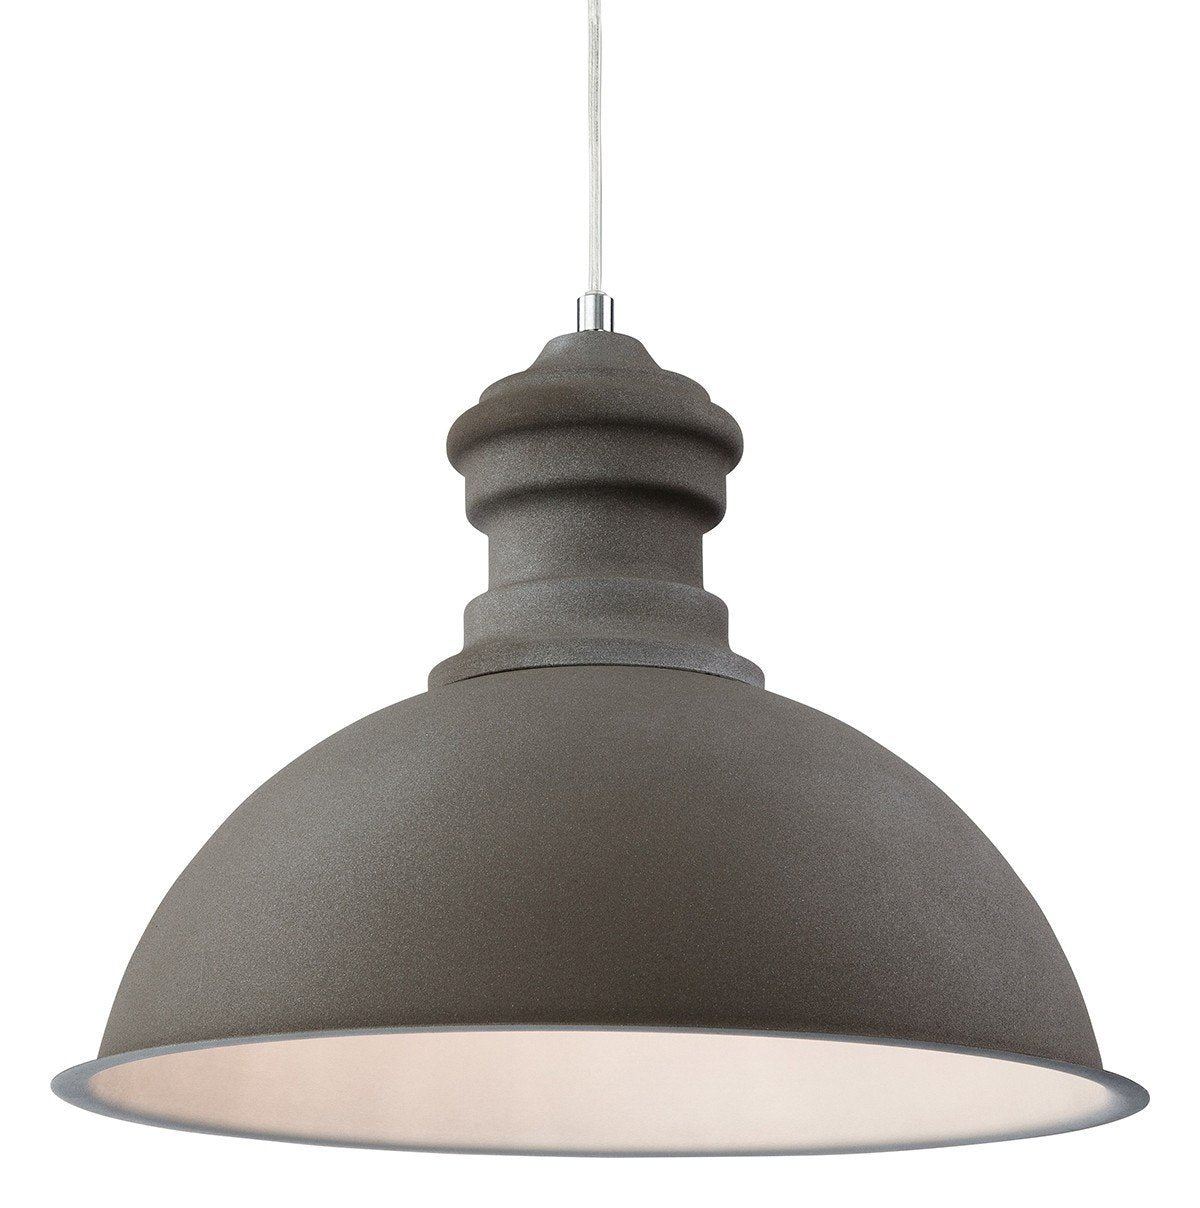 Aztec Rough Sand Concrete Single Pendant - London Lighting